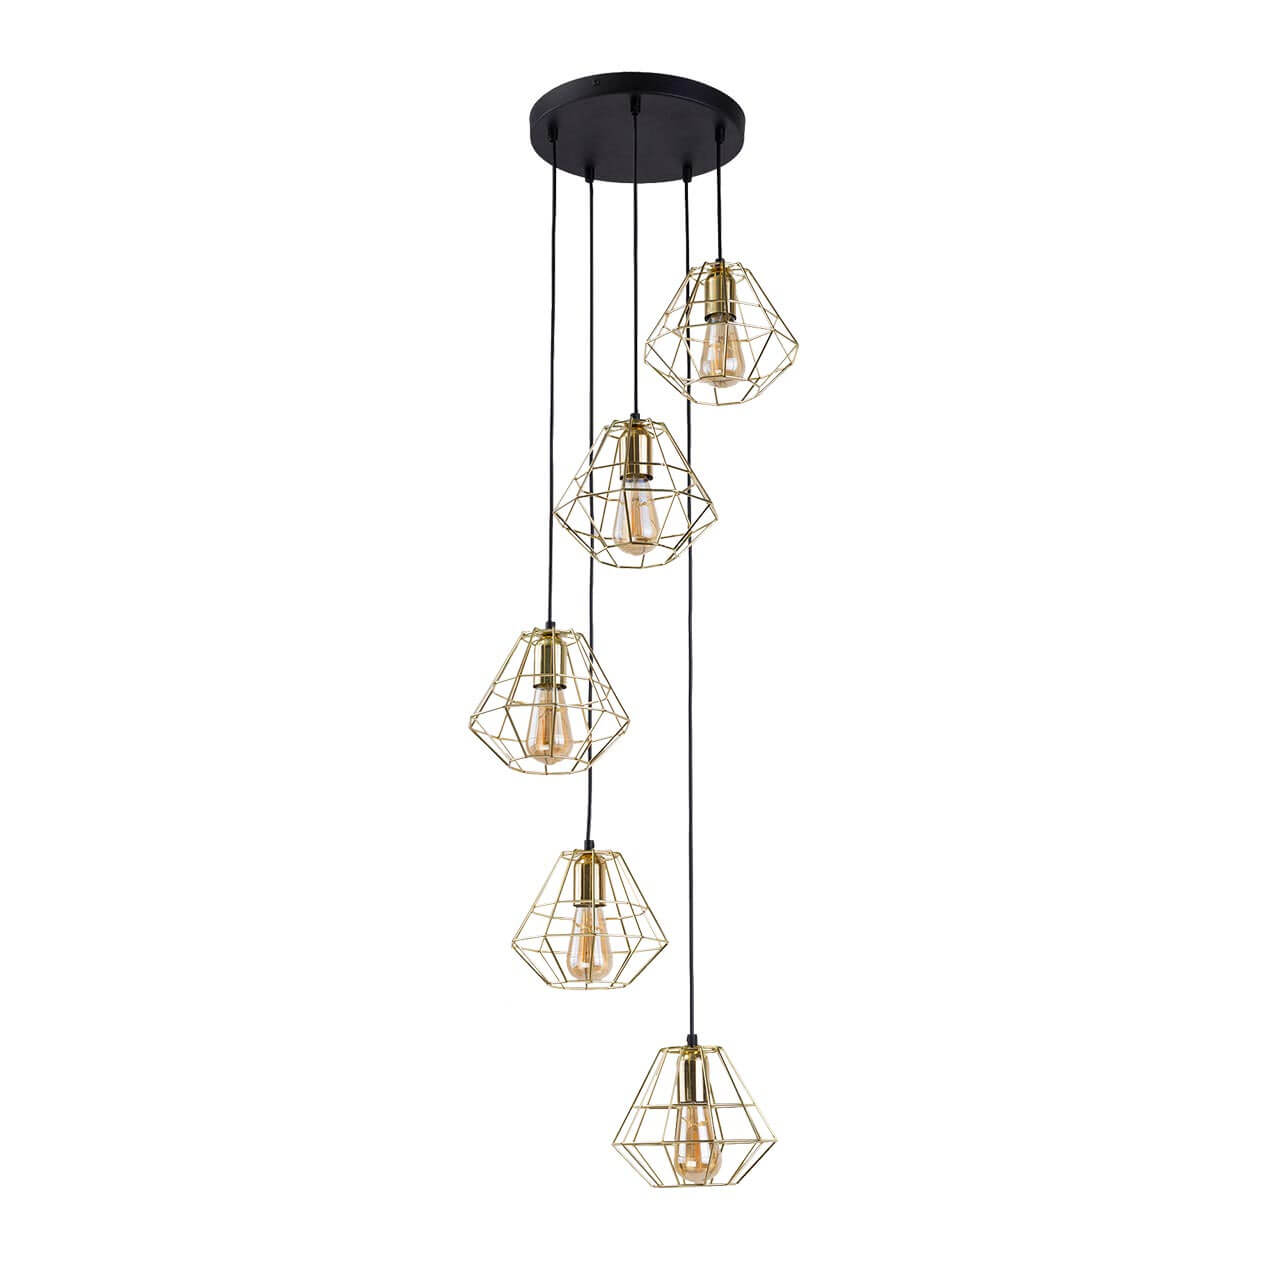 Светильник TK Lighting 2576 Diamond Gold